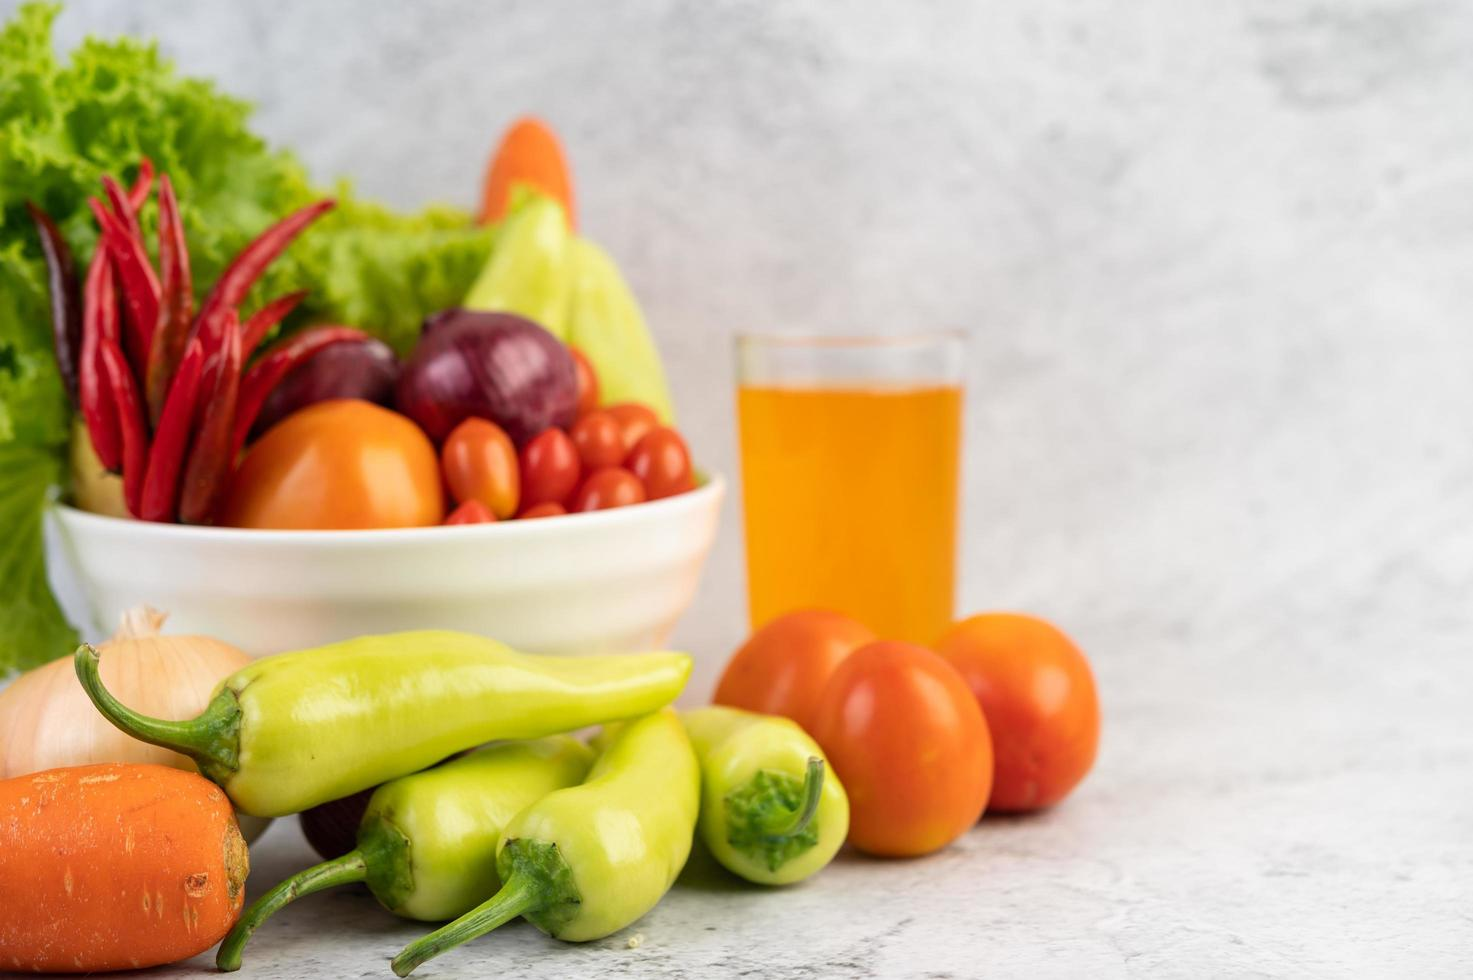 Tomatoes, red onions, bell peppers, carrots and Chinese cabbage photo